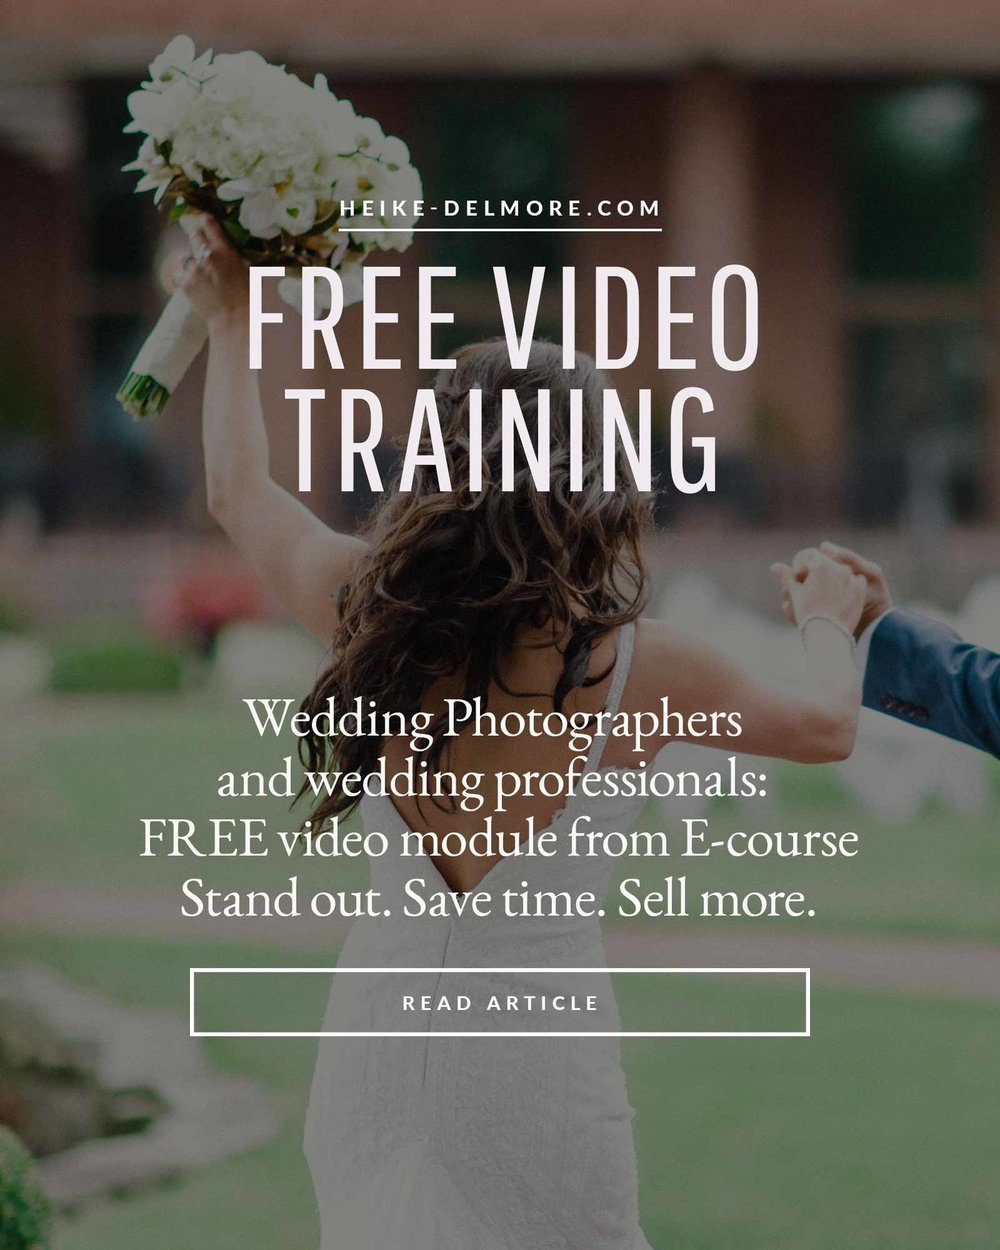 Free video training wedding photography bsuiness